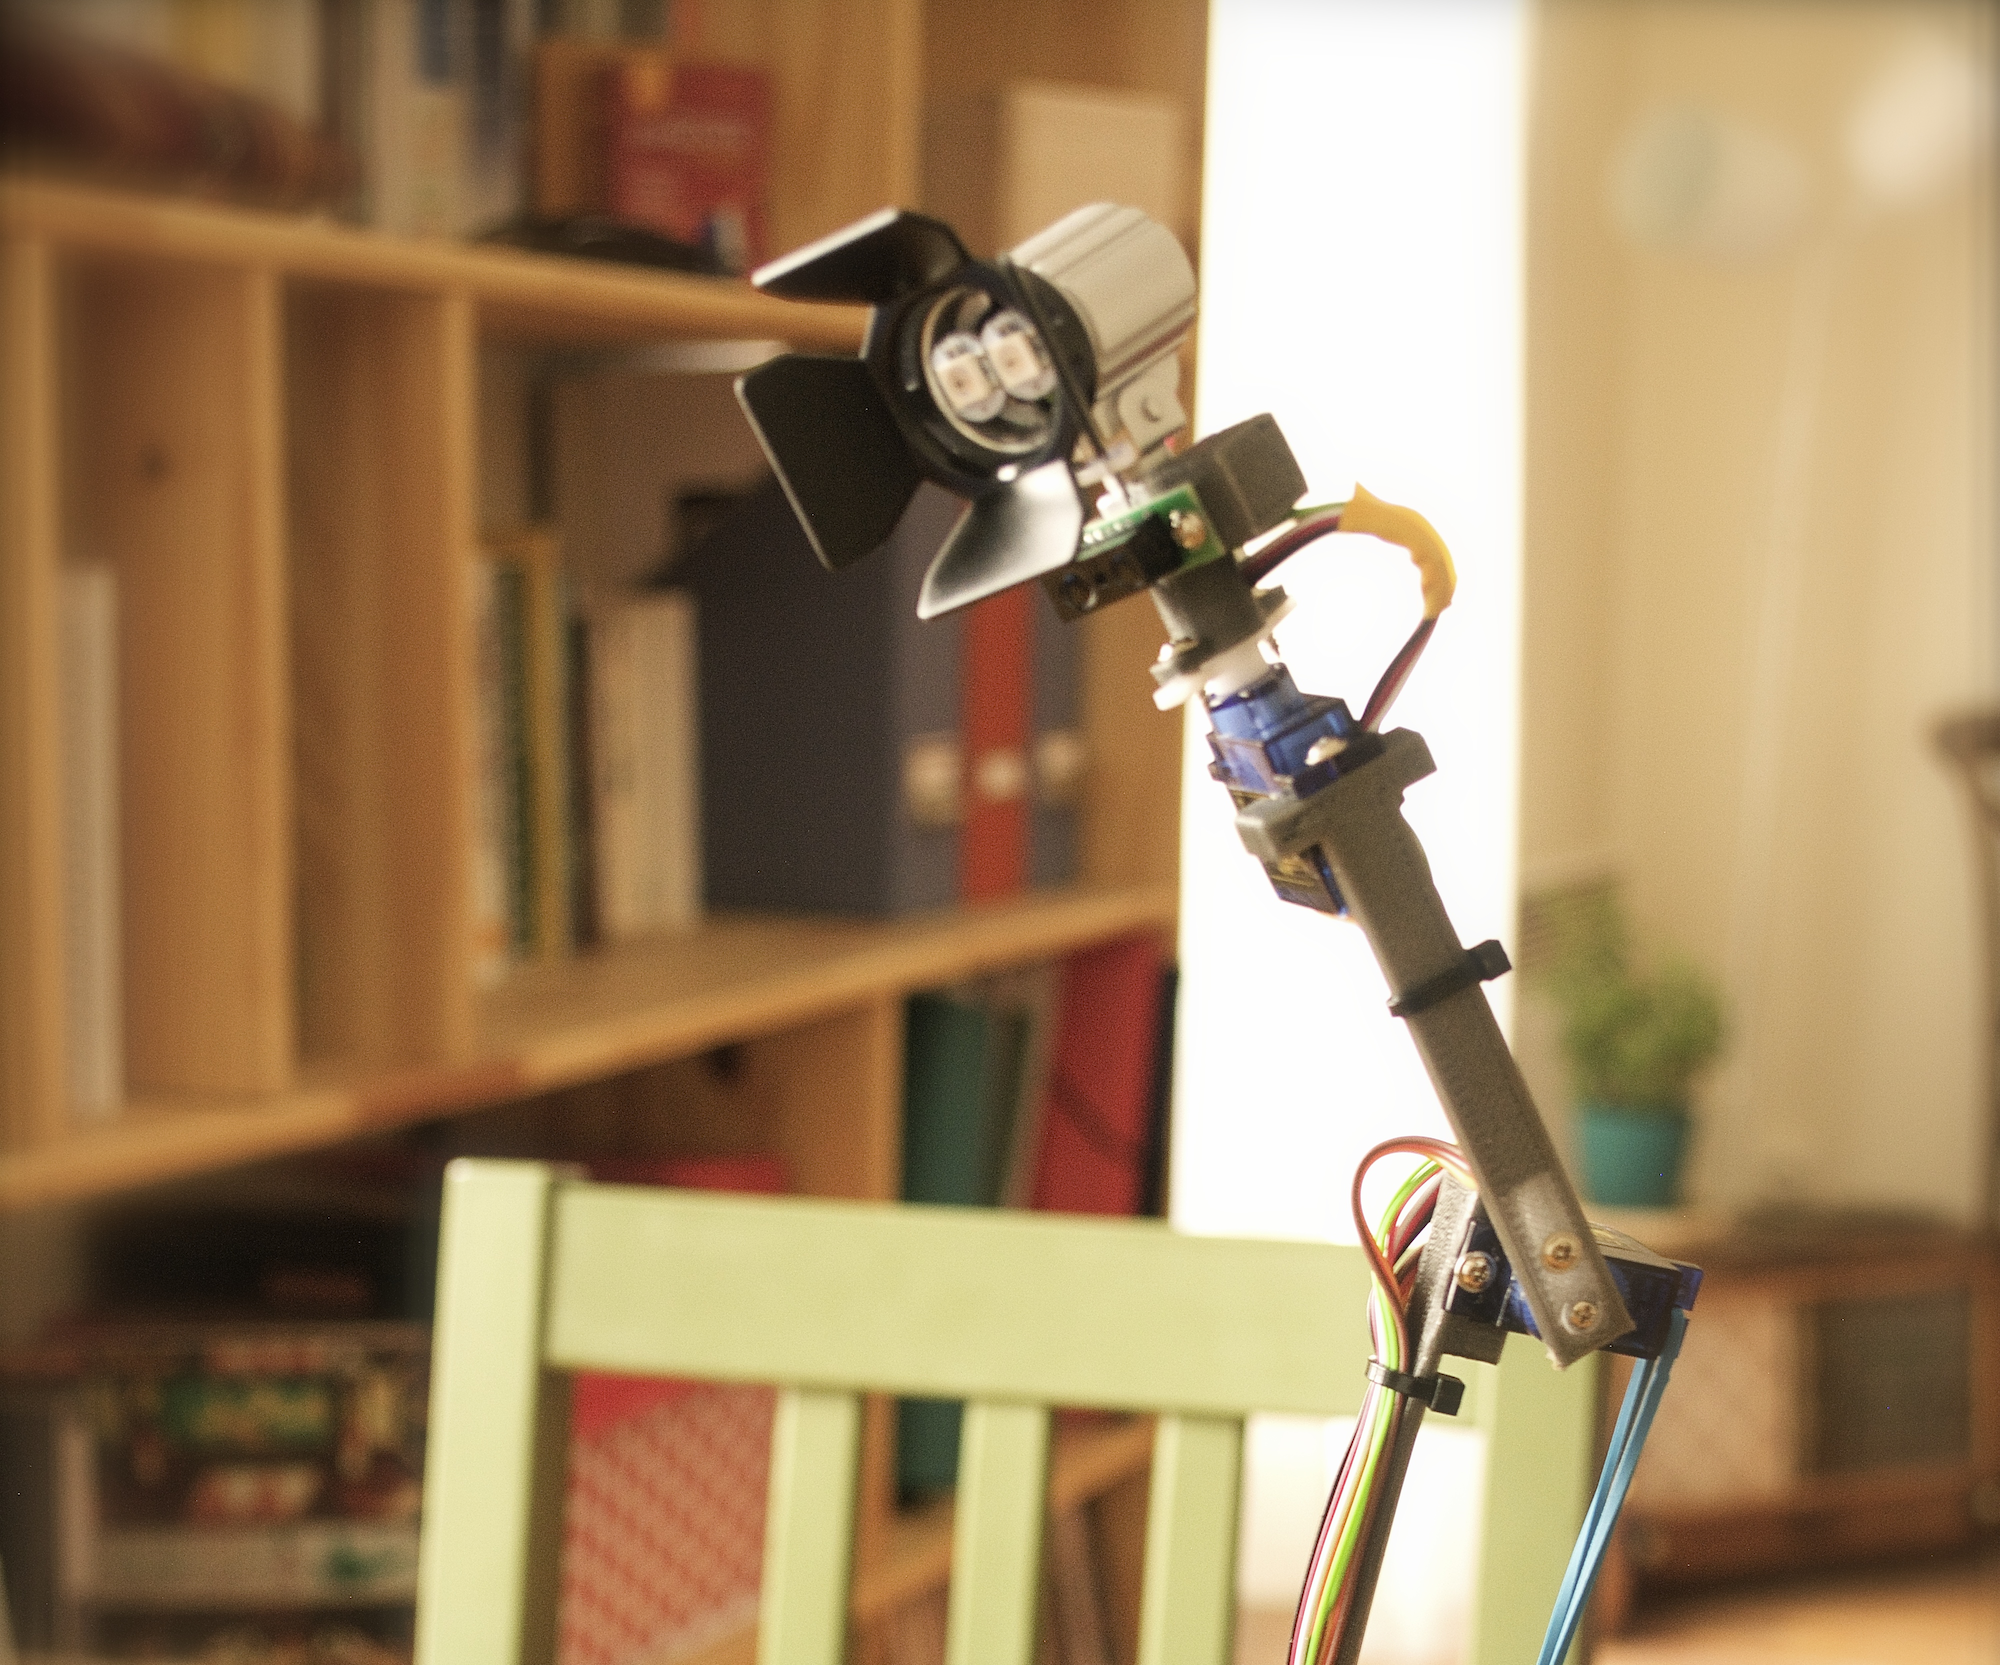 OiO - a desk lamp that has a soul